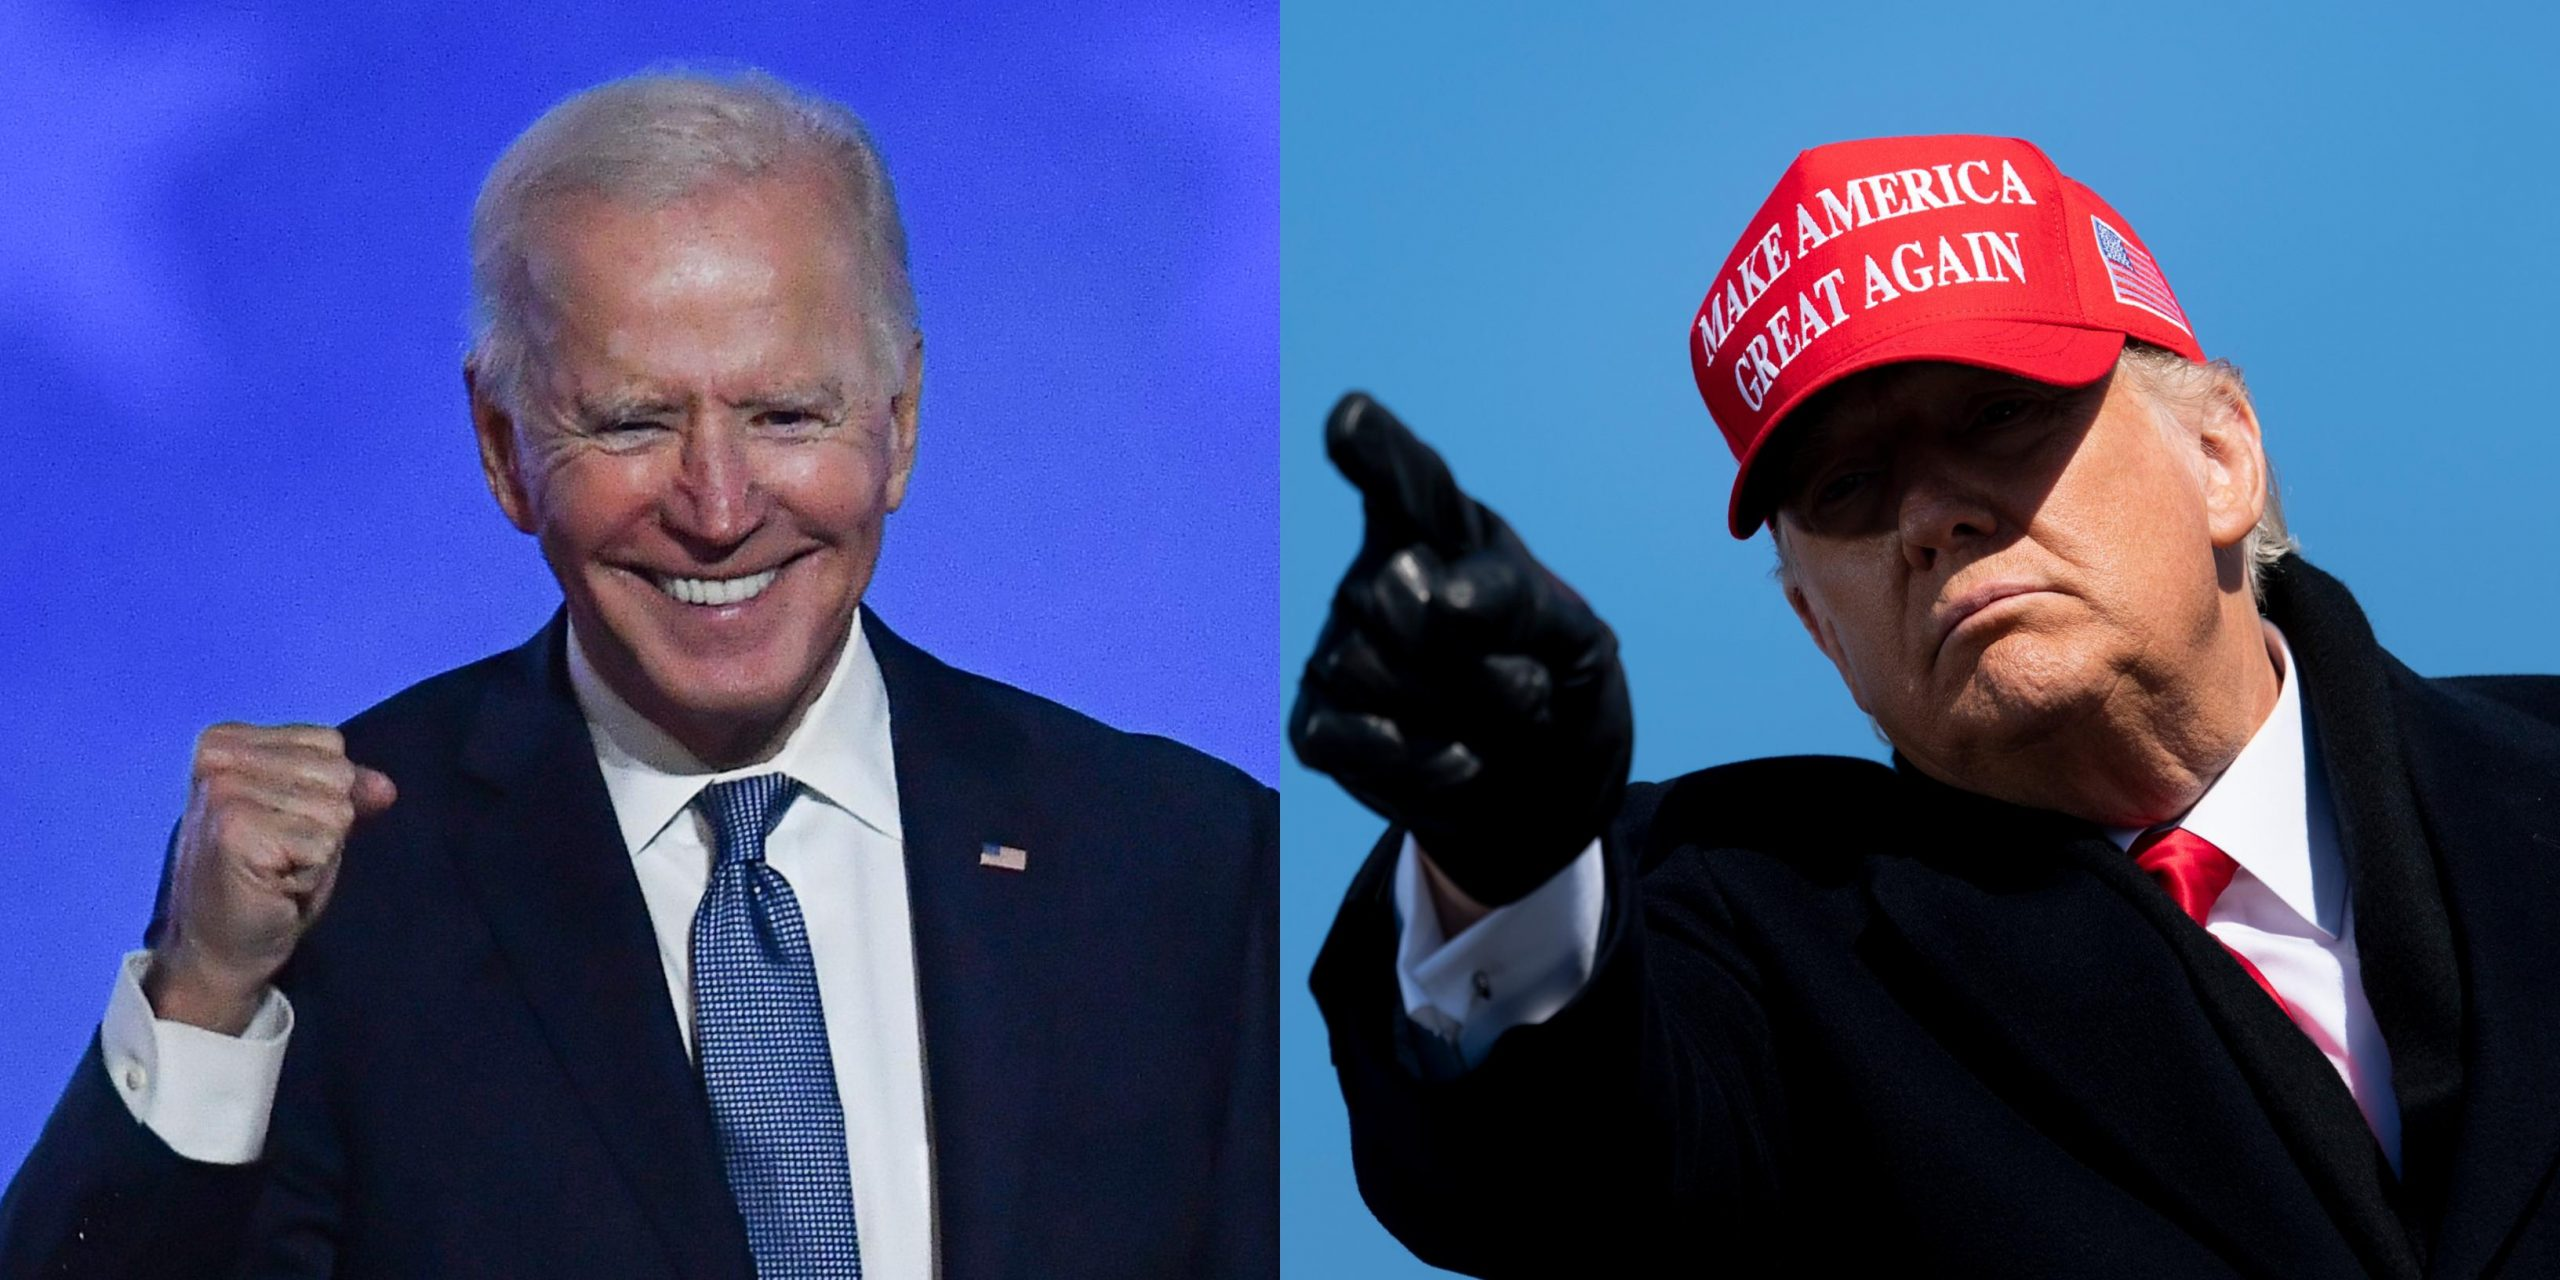 Trump refuses to concede to Biden, vows to challenge election results